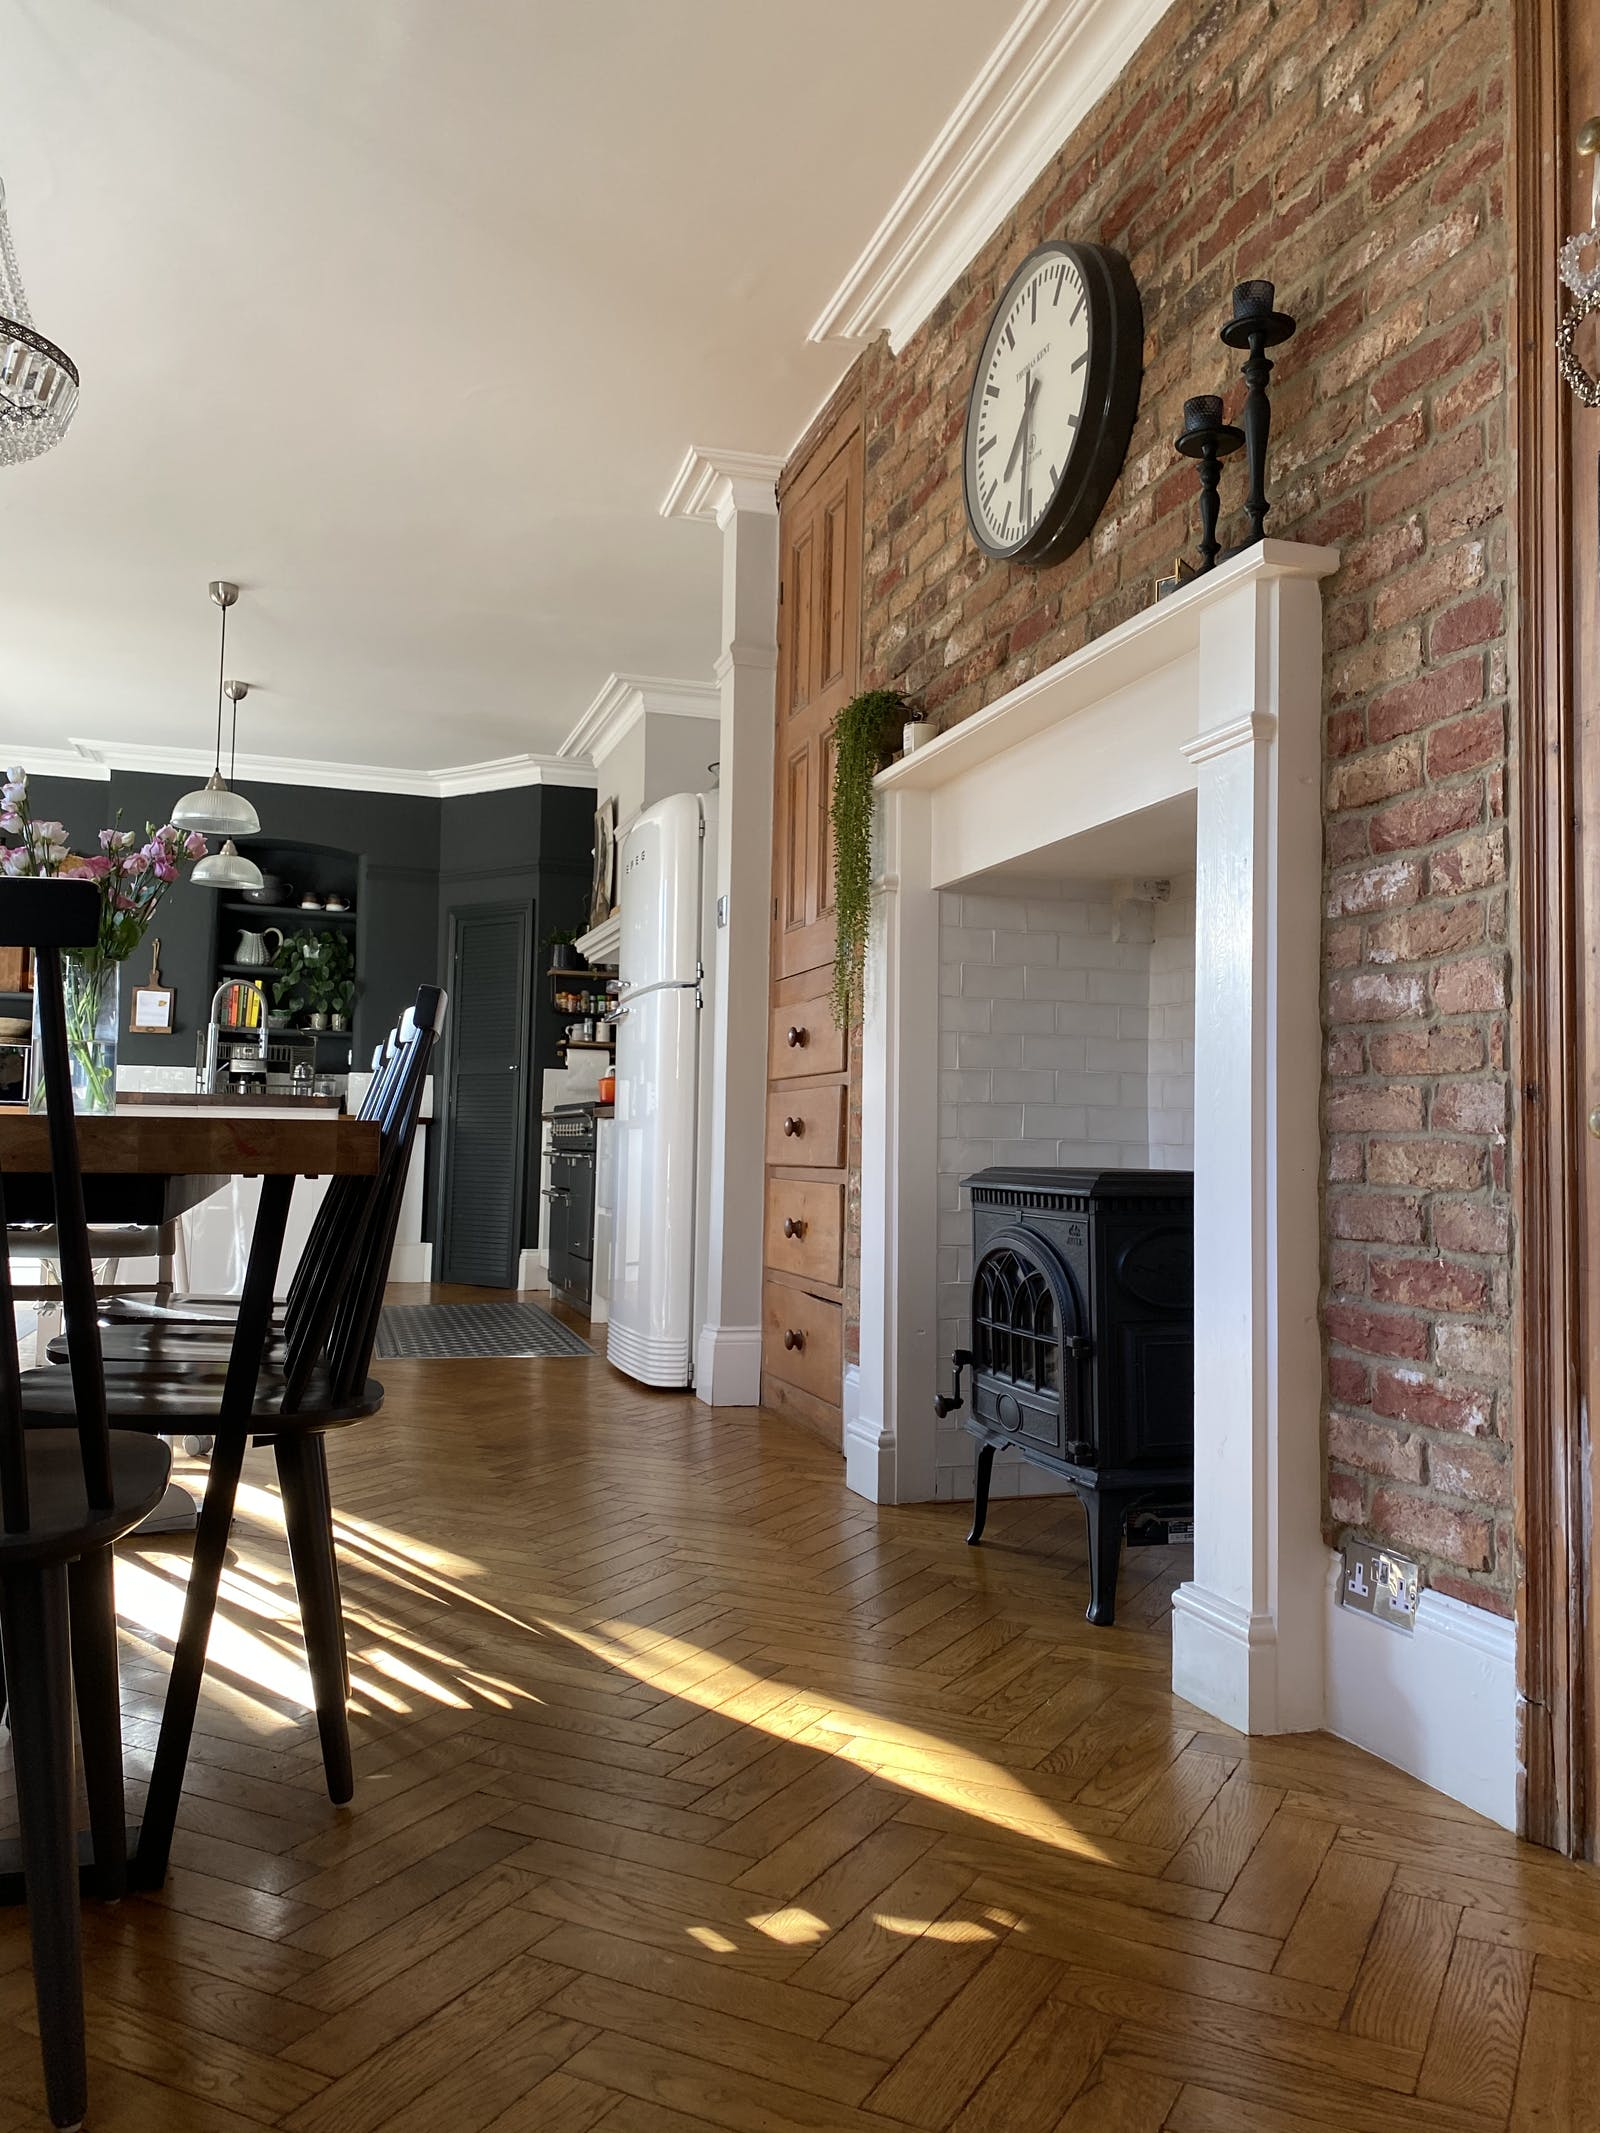 Dining room with a brick wall and a fireplace, overlooking a kitchen wall painted in black